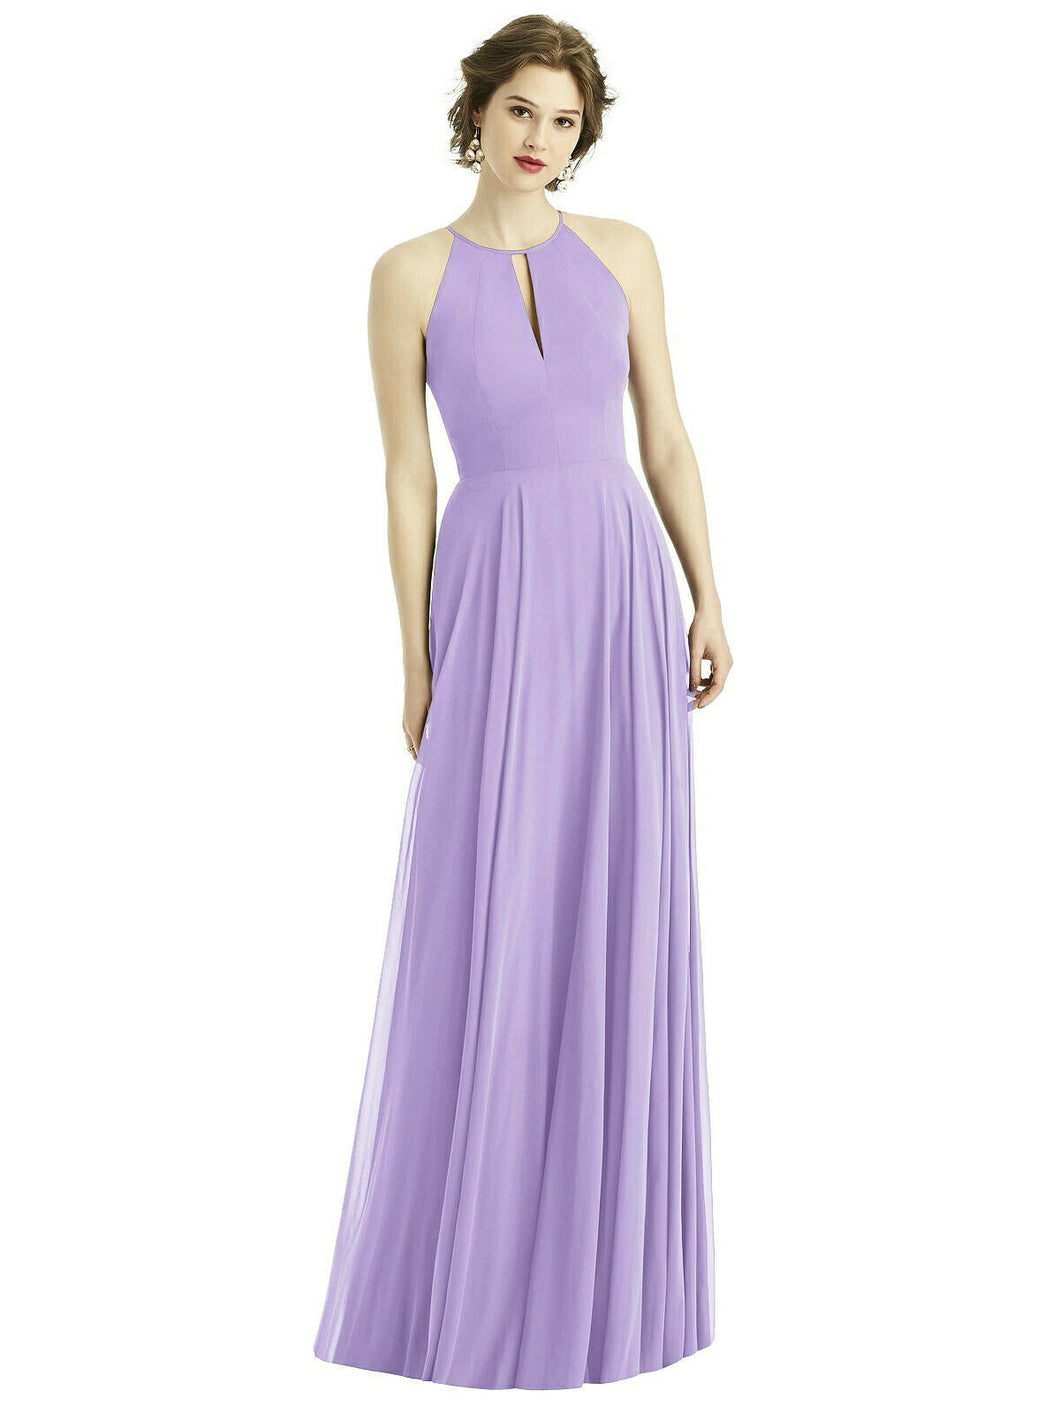 Lilac Mauve Lavender  long halter neck bridesmaid evening prom wedding bridal dress Loulous Bridal Boutique Ltd UK